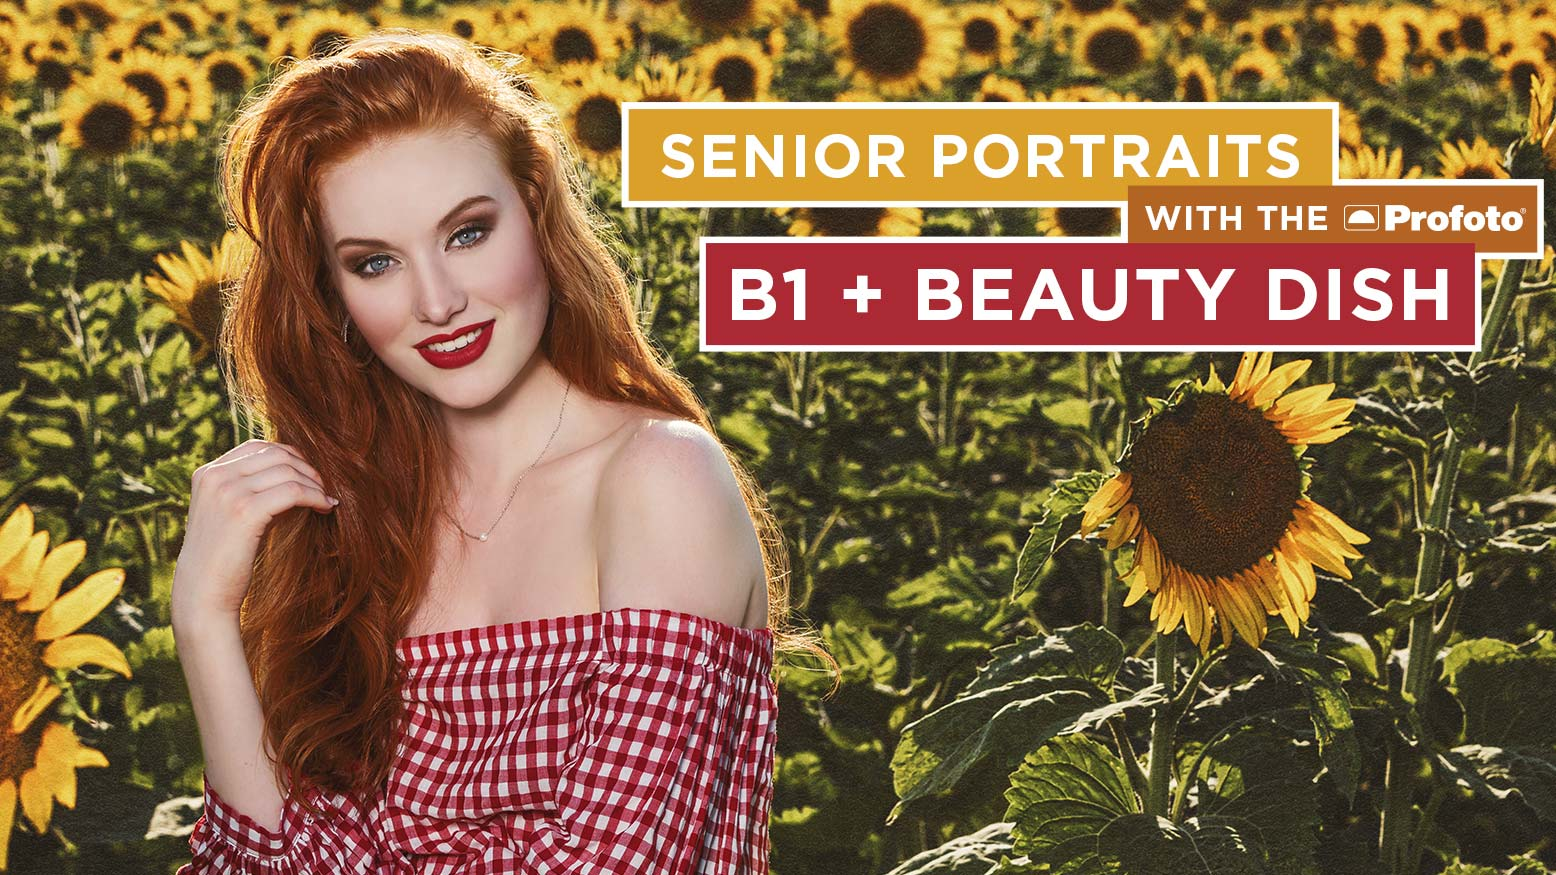 Senior Portraits With the Profoto B1 + Beauty Dish